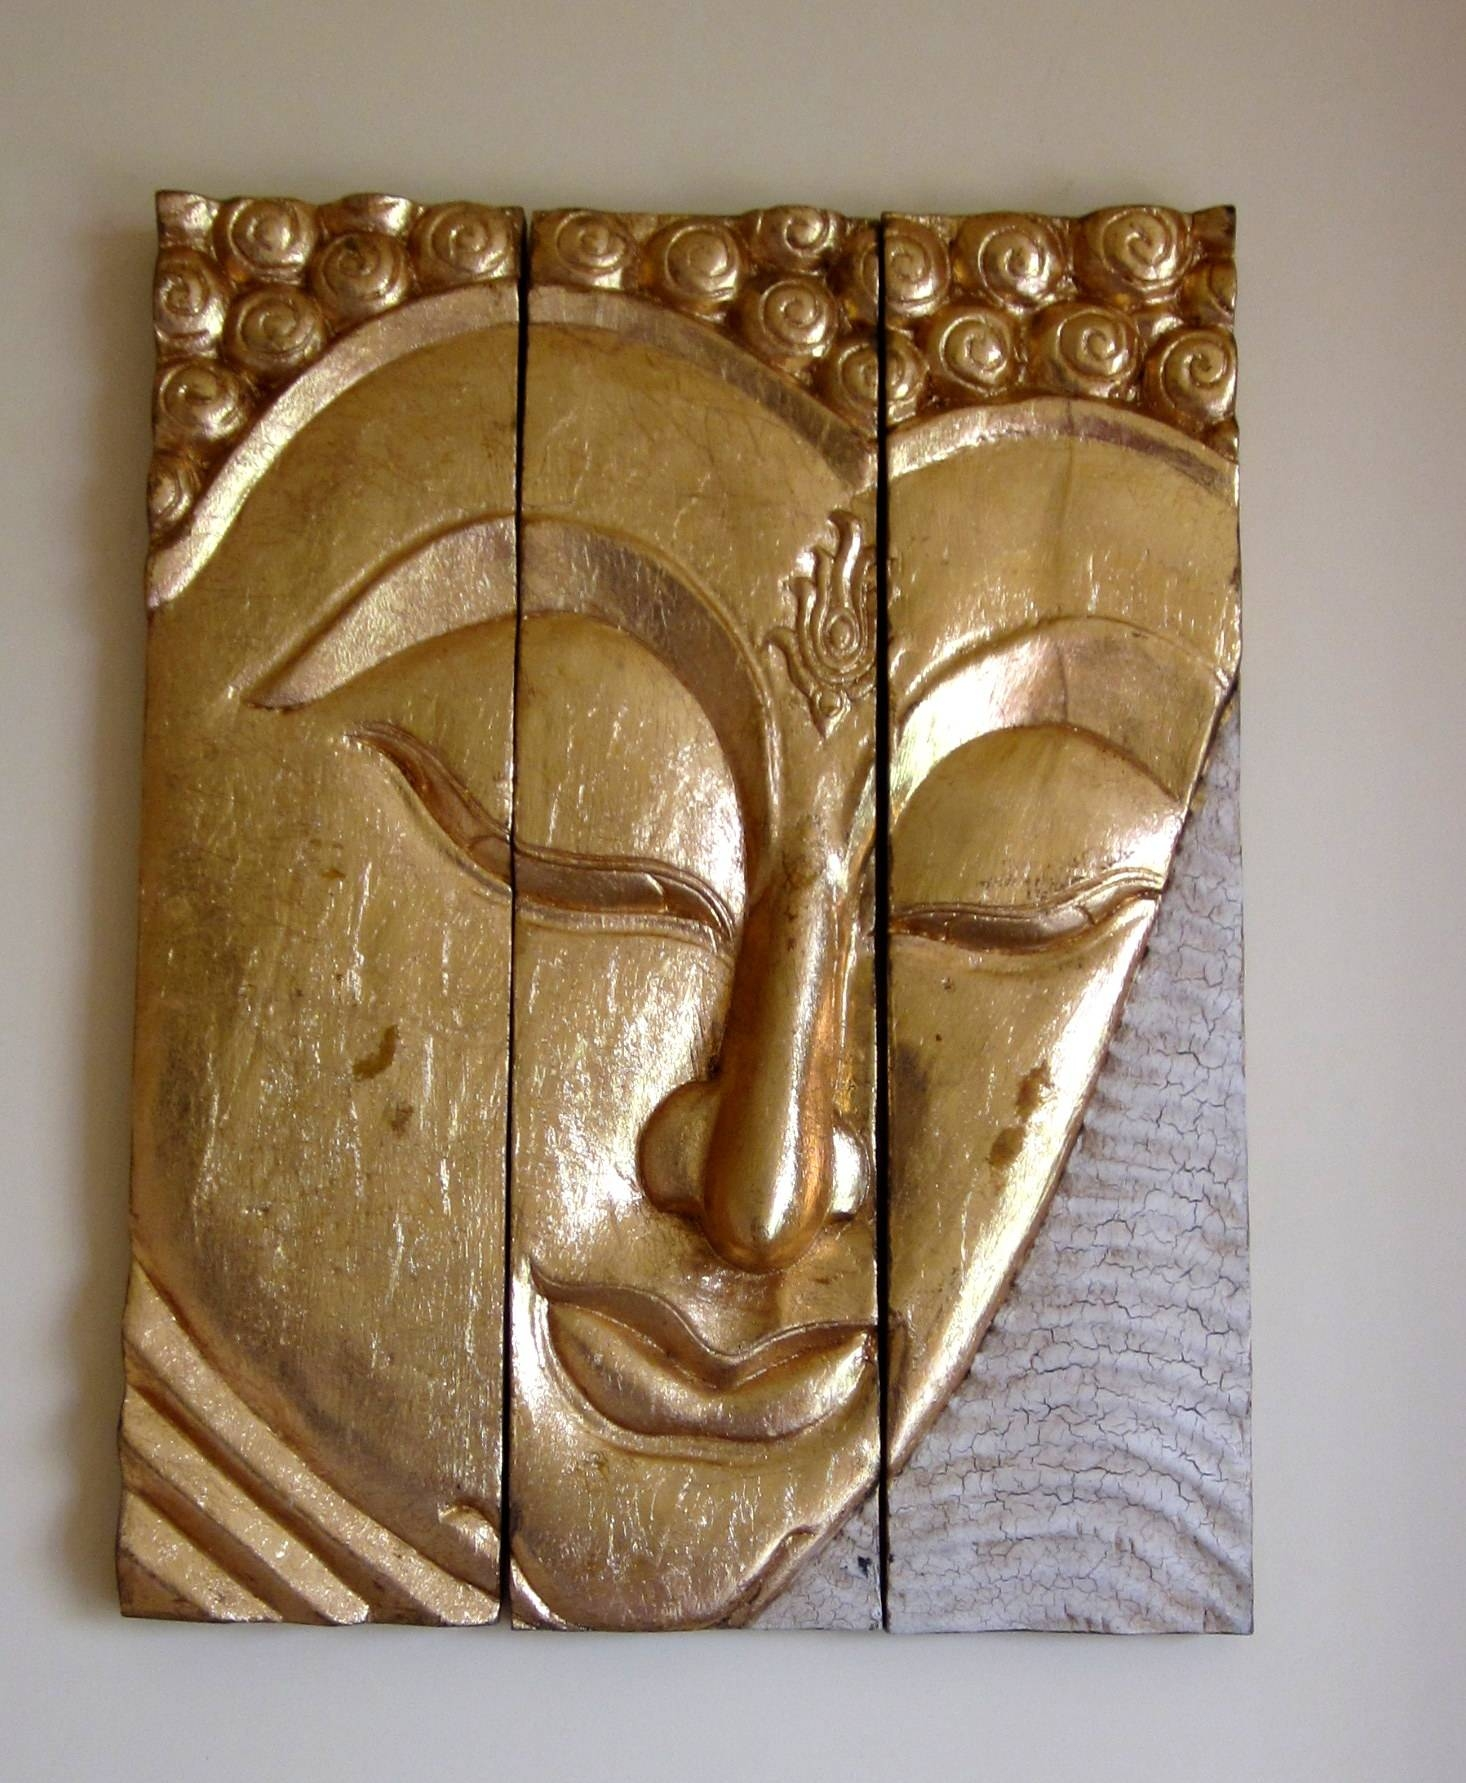 Photography Styling Challenge #3 – Wall Vignette | Myfoodtapestry Within Most Up To Date Buddha Metal Wall Art (View 16 of 20)